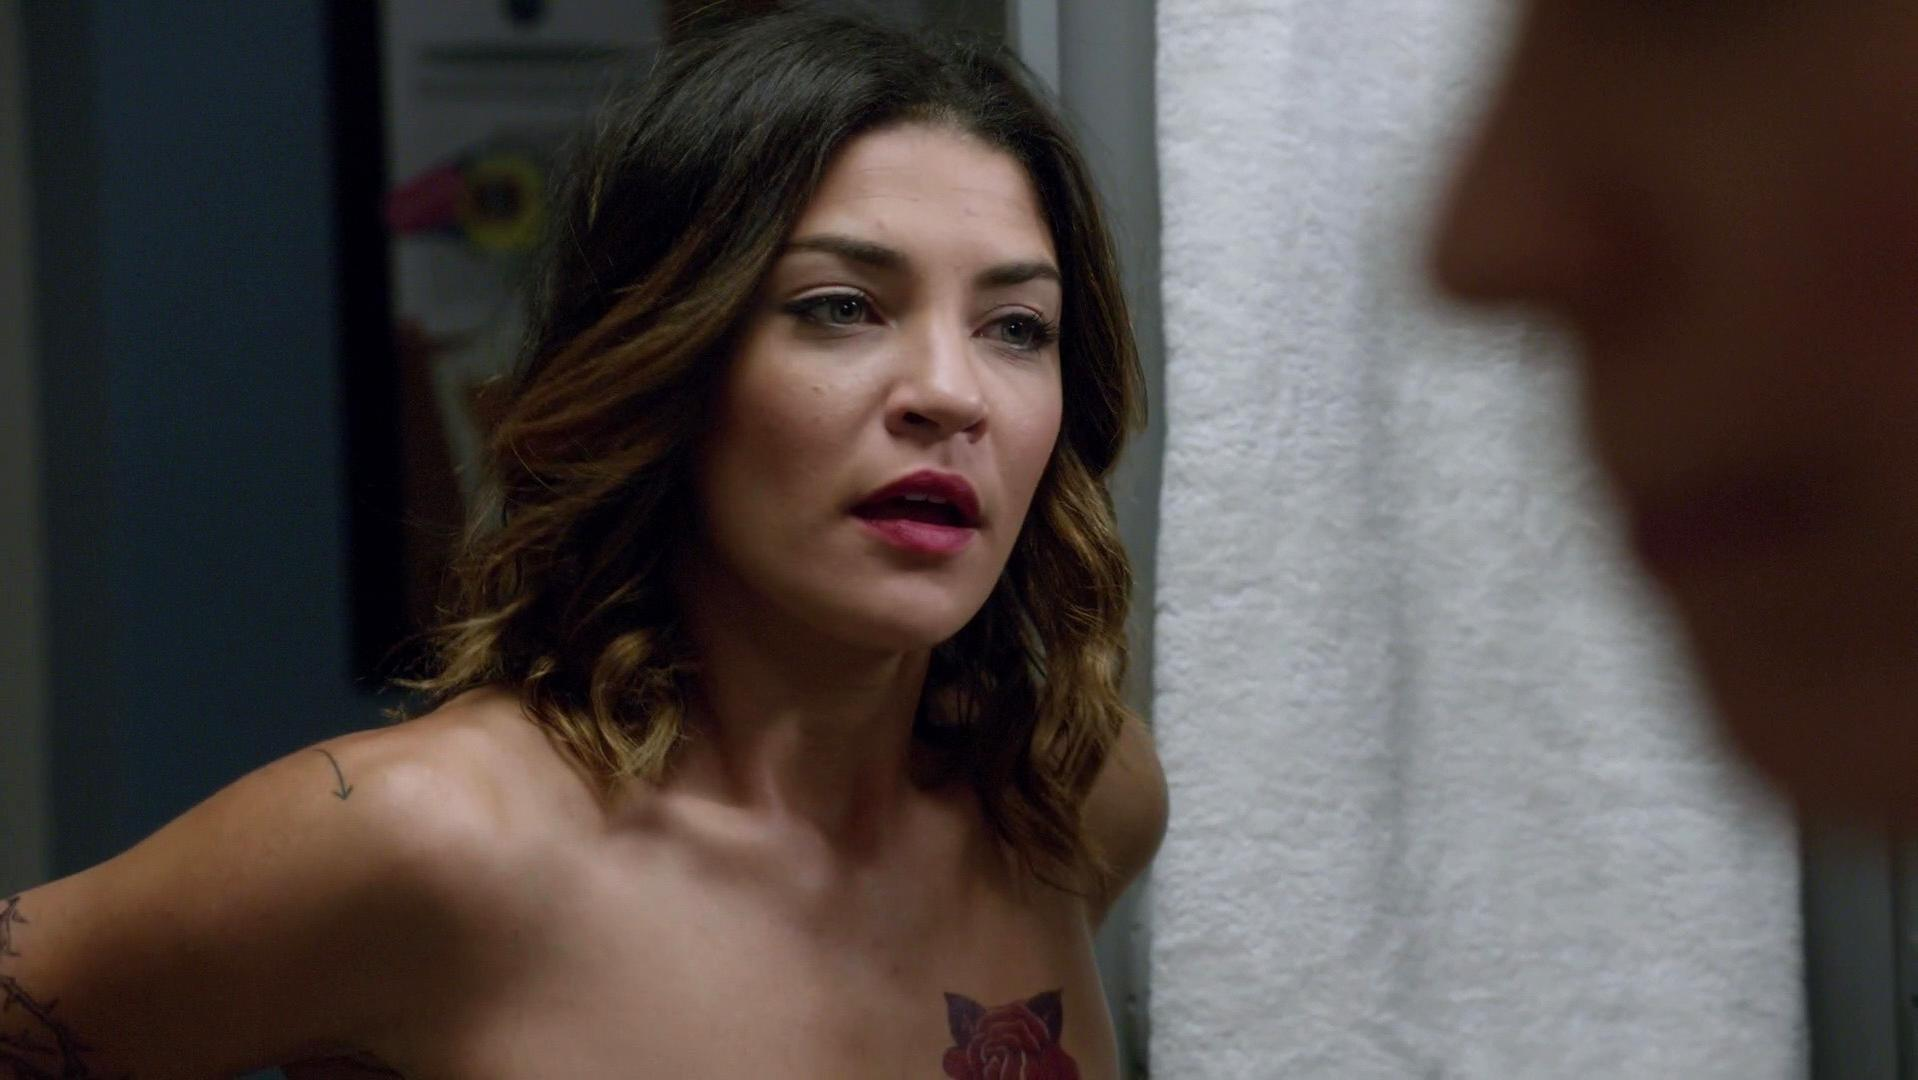 Jessica szohr kingdom s02e02 - 2 part 4